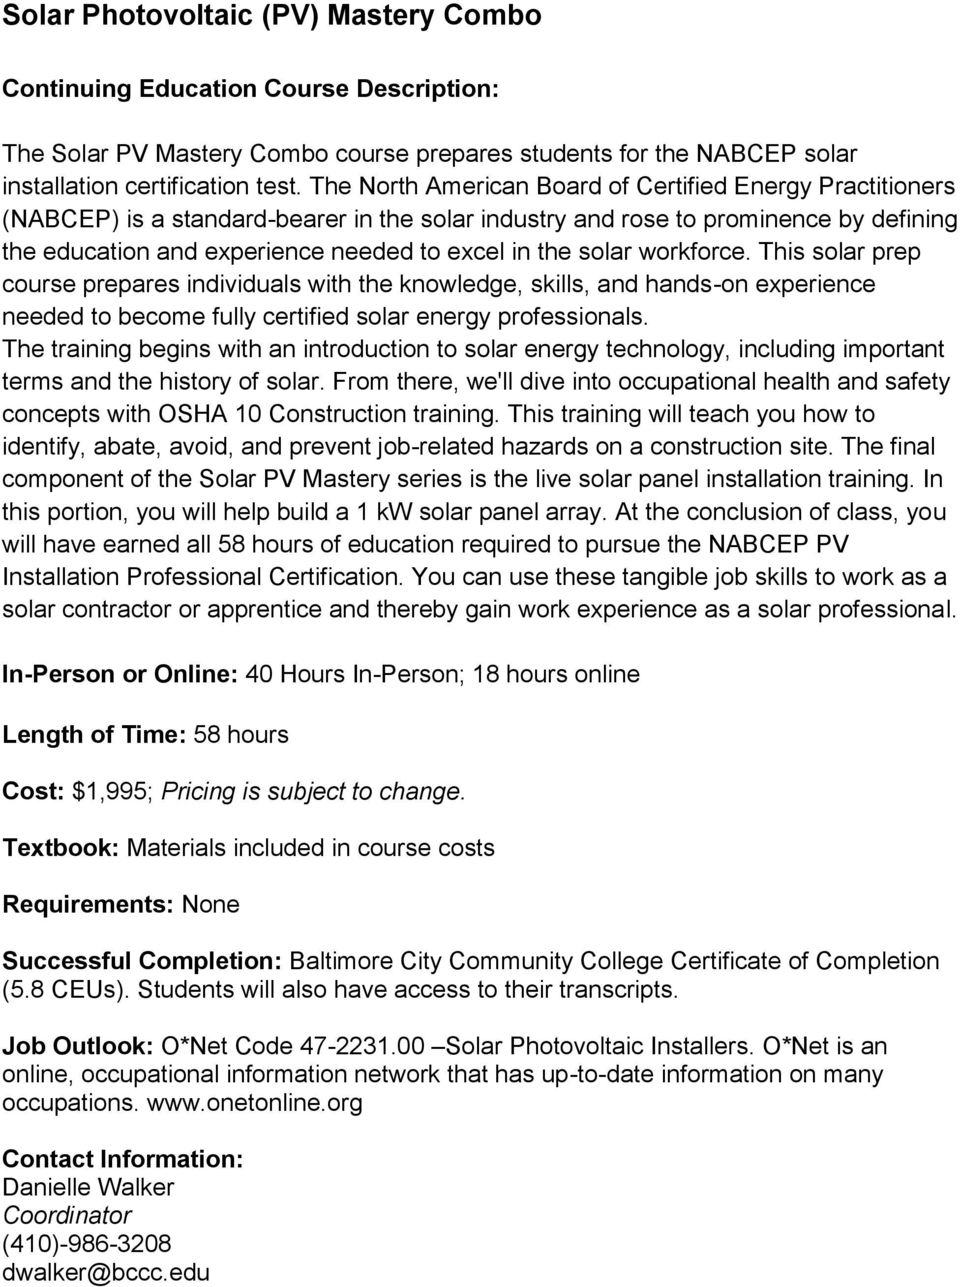 solar workforce. This solar prep course prepares individuals with the knowledge, skills, and hands-on experience needed to become fully certified solar energy professionals.